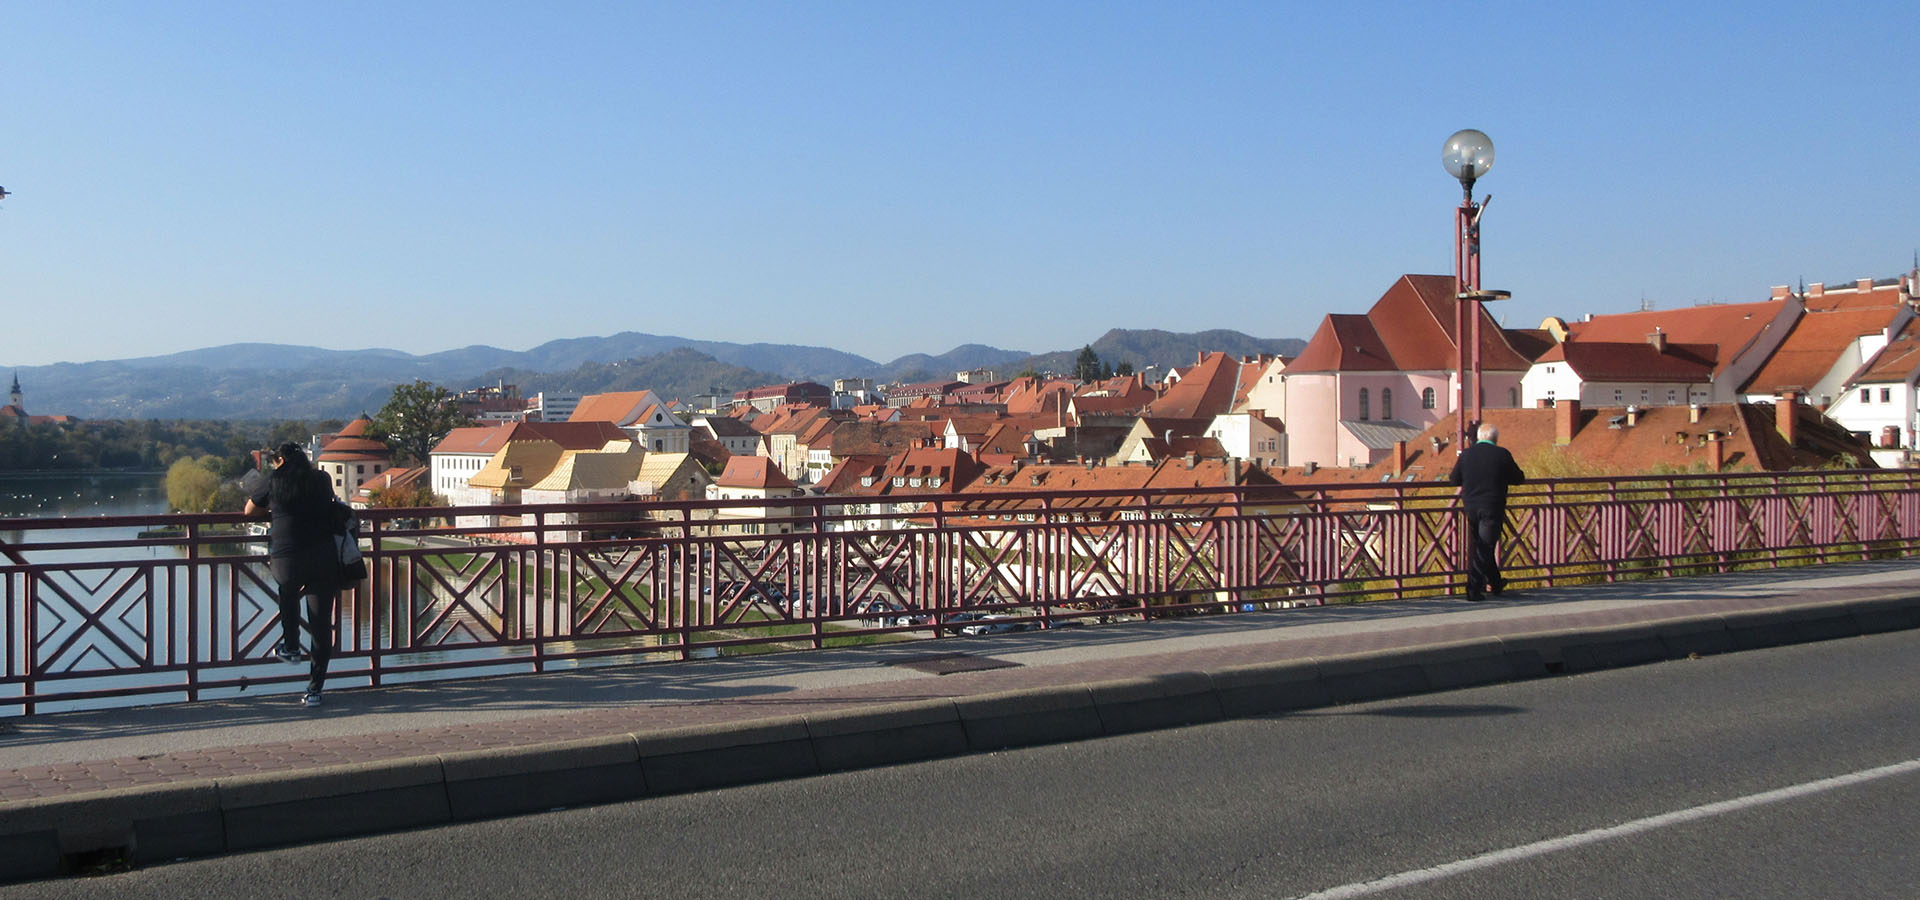 SLOVENIA – Accompanying the students in Maribor